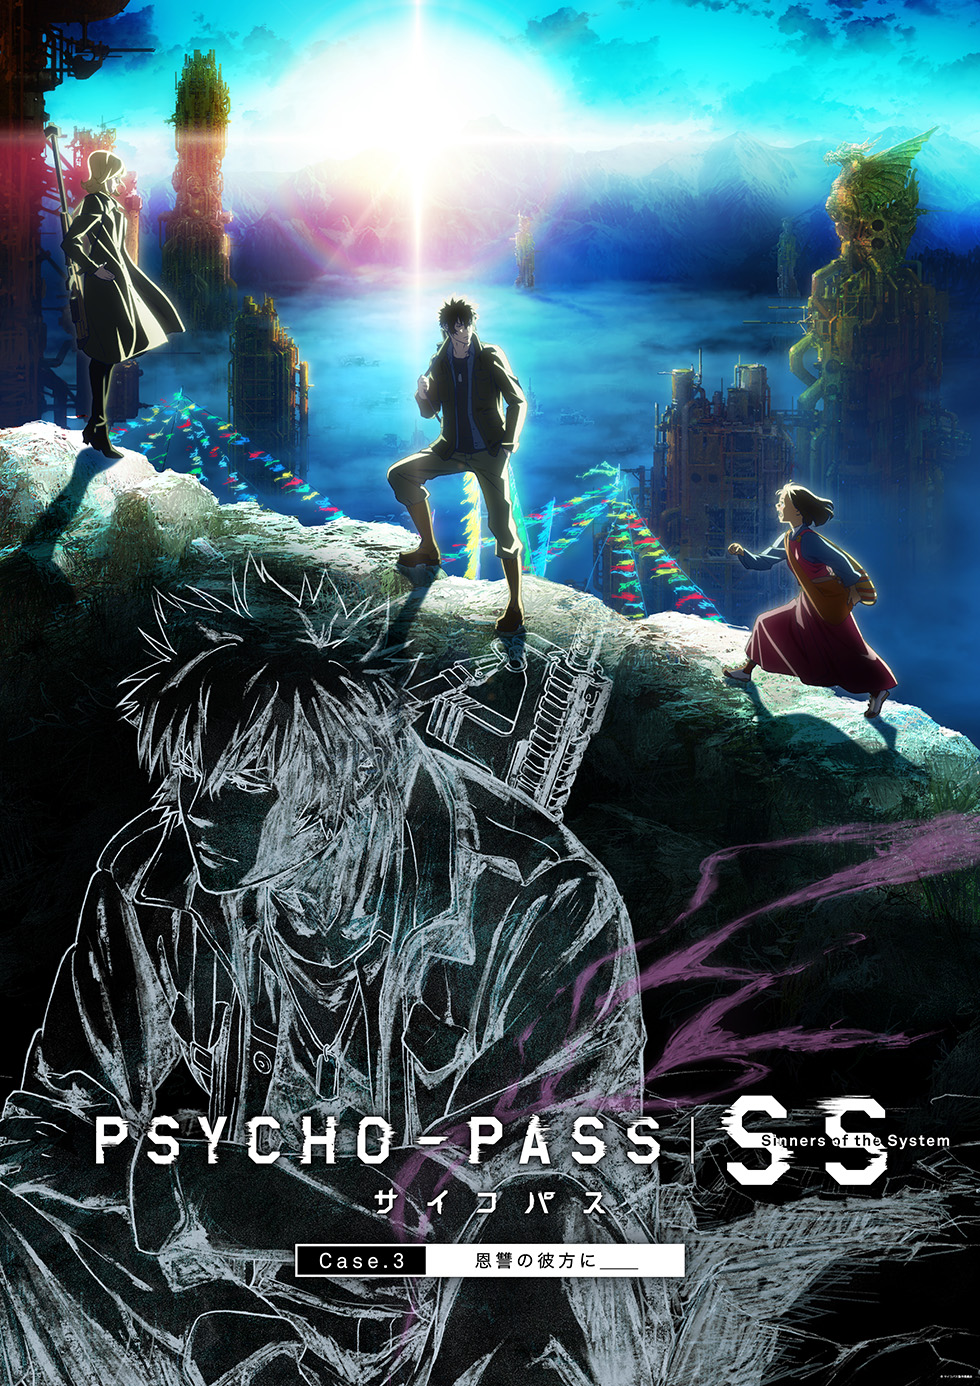 production i g psycho pass サイコパス sinners of the system 1月